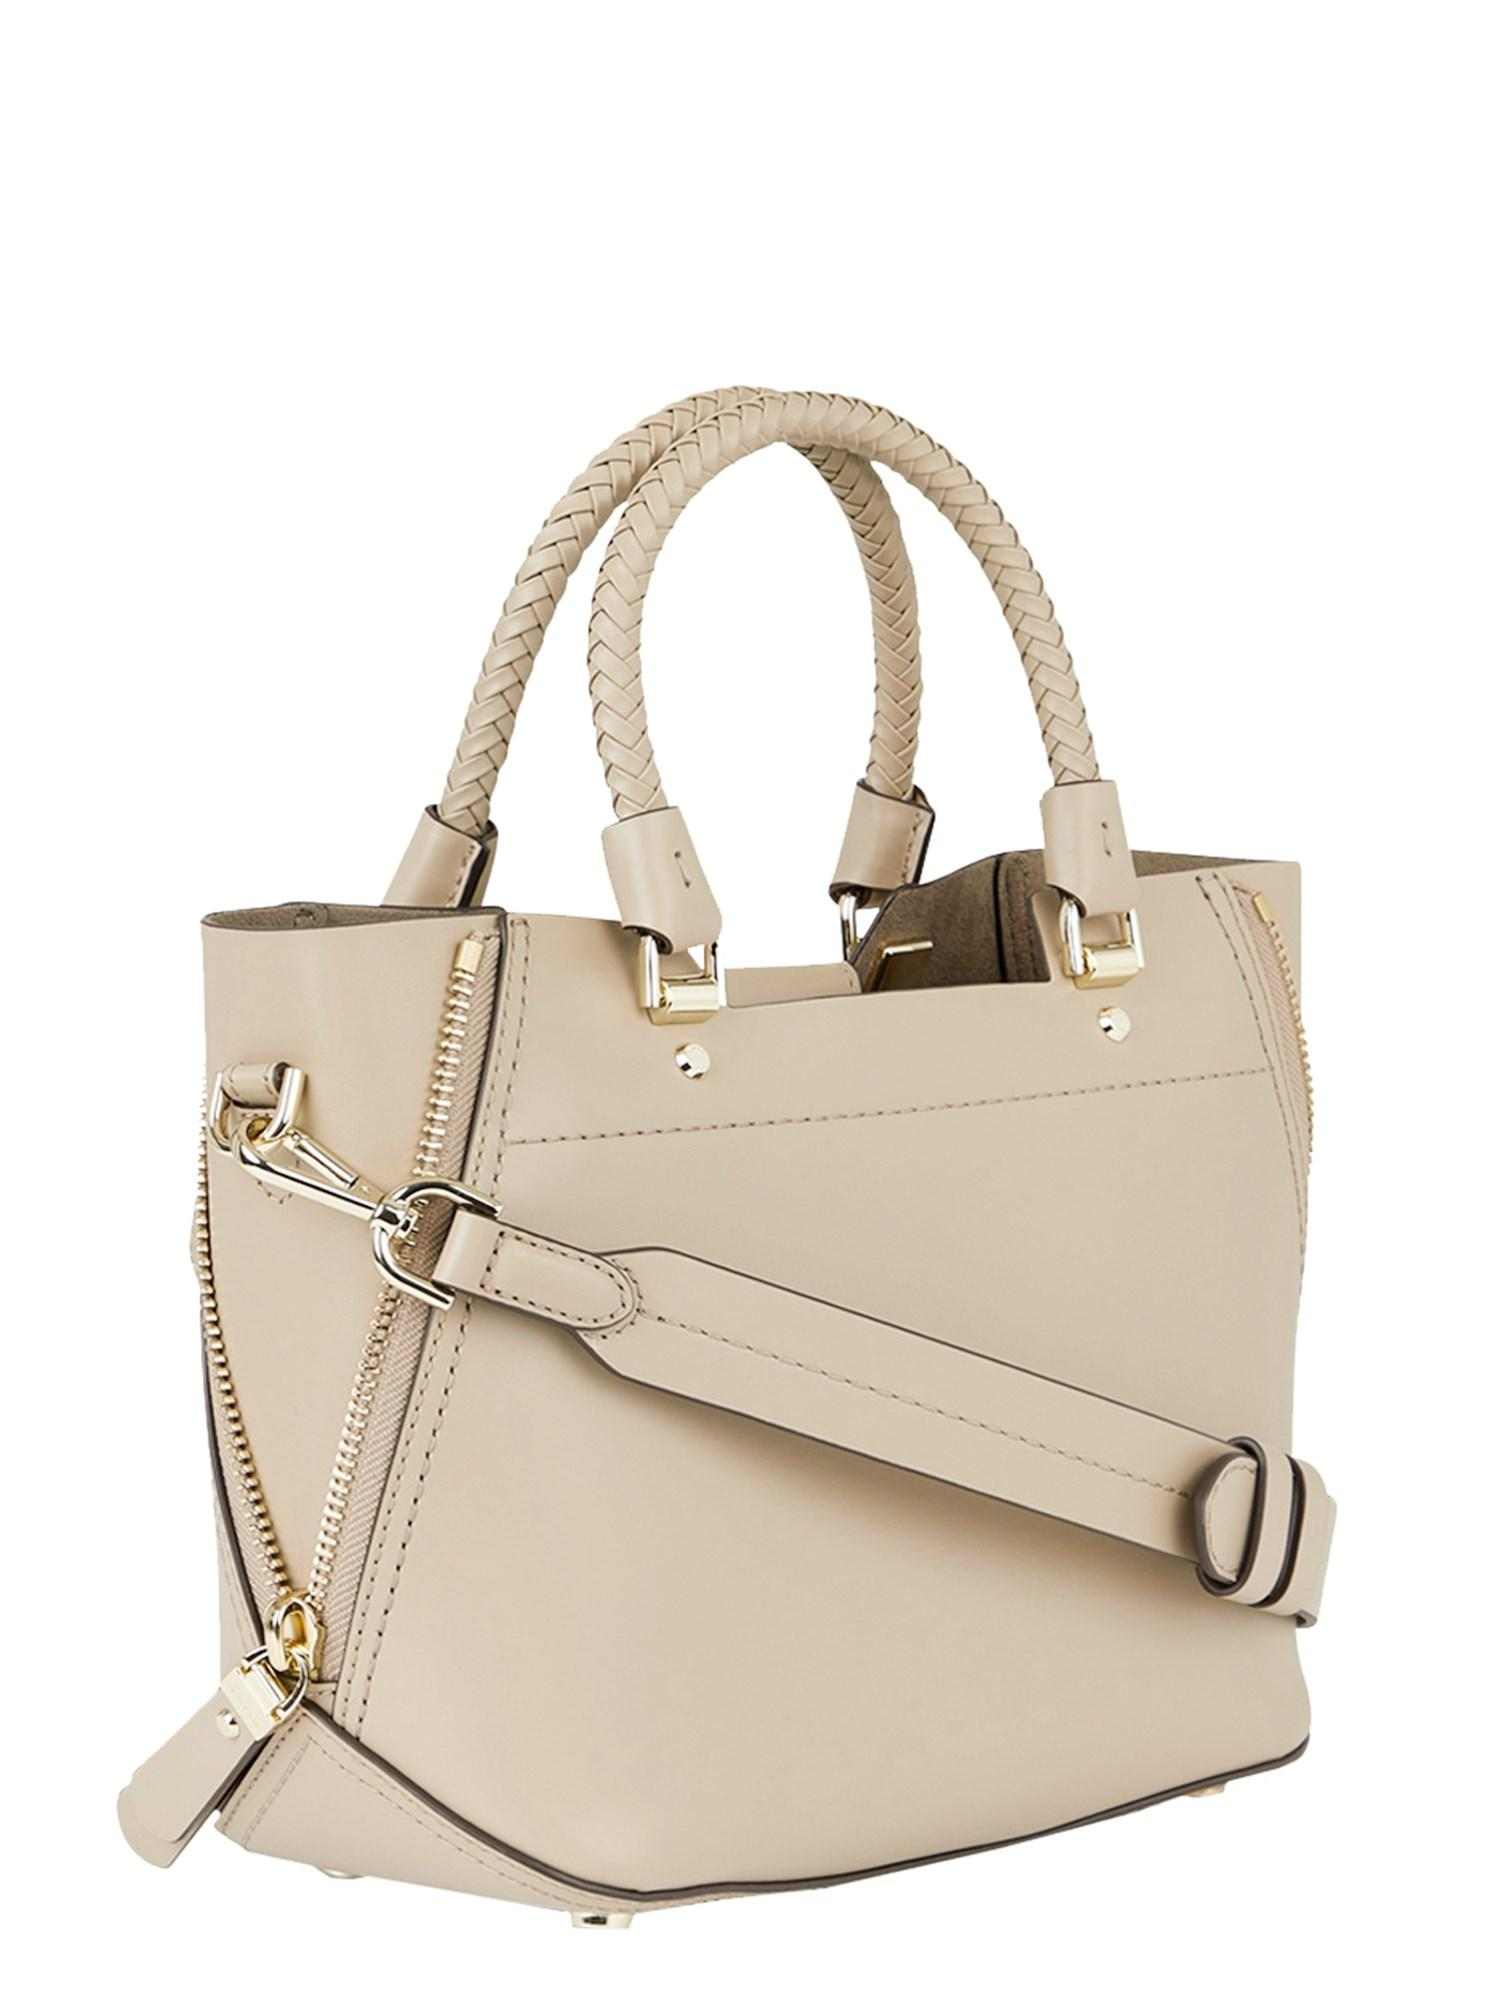 54ccc46f5c Lyst - MICHAEL Michael Kors Borsa A Mano Blakely In Pelle in Natural